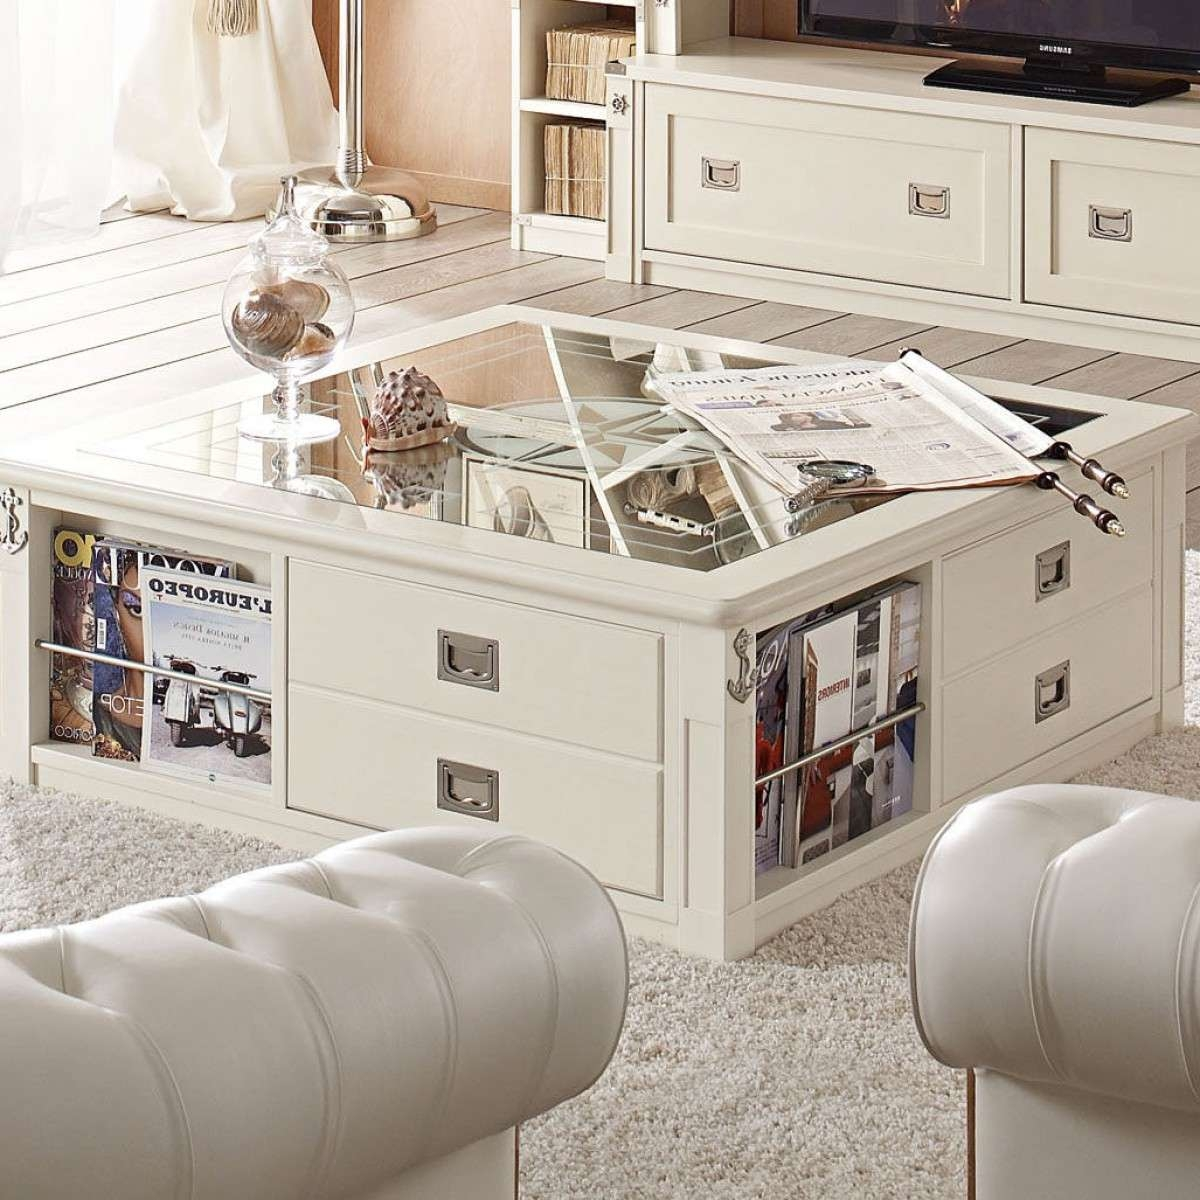 Current Square Wood Coffee Tables With Storage Pertaining To White Coffee Table With Storage (View 11 of 20)